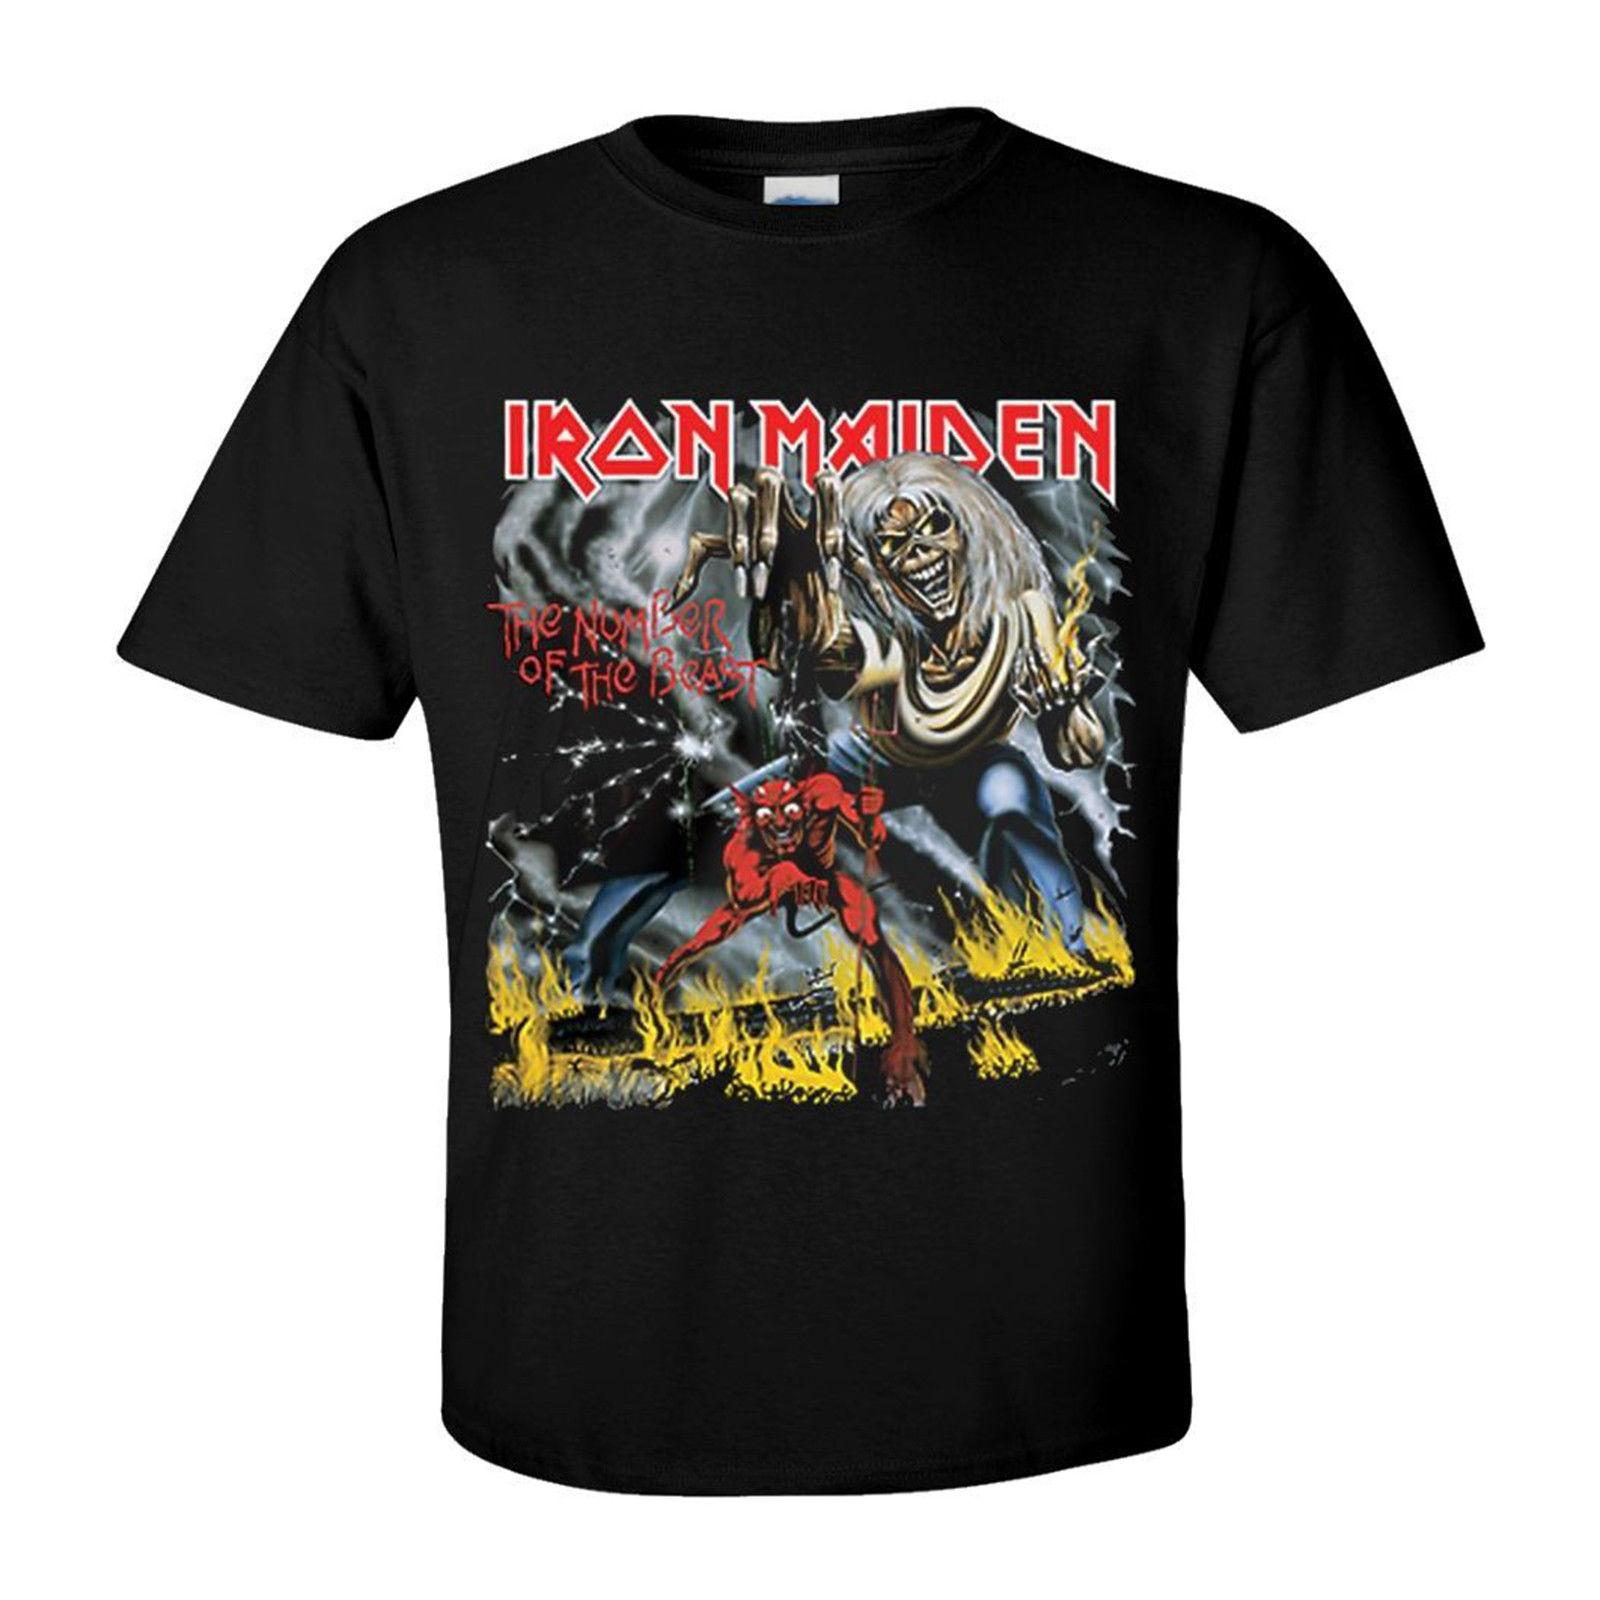 47c46fe39a Iron Maiden Number Of The Beast T Shirt Officiel Homme Rock Groupe De  Musique The Coolest T Shirts T Shirt Shirt Designs From Hiphoptshirt,  $13.19| DHgate.